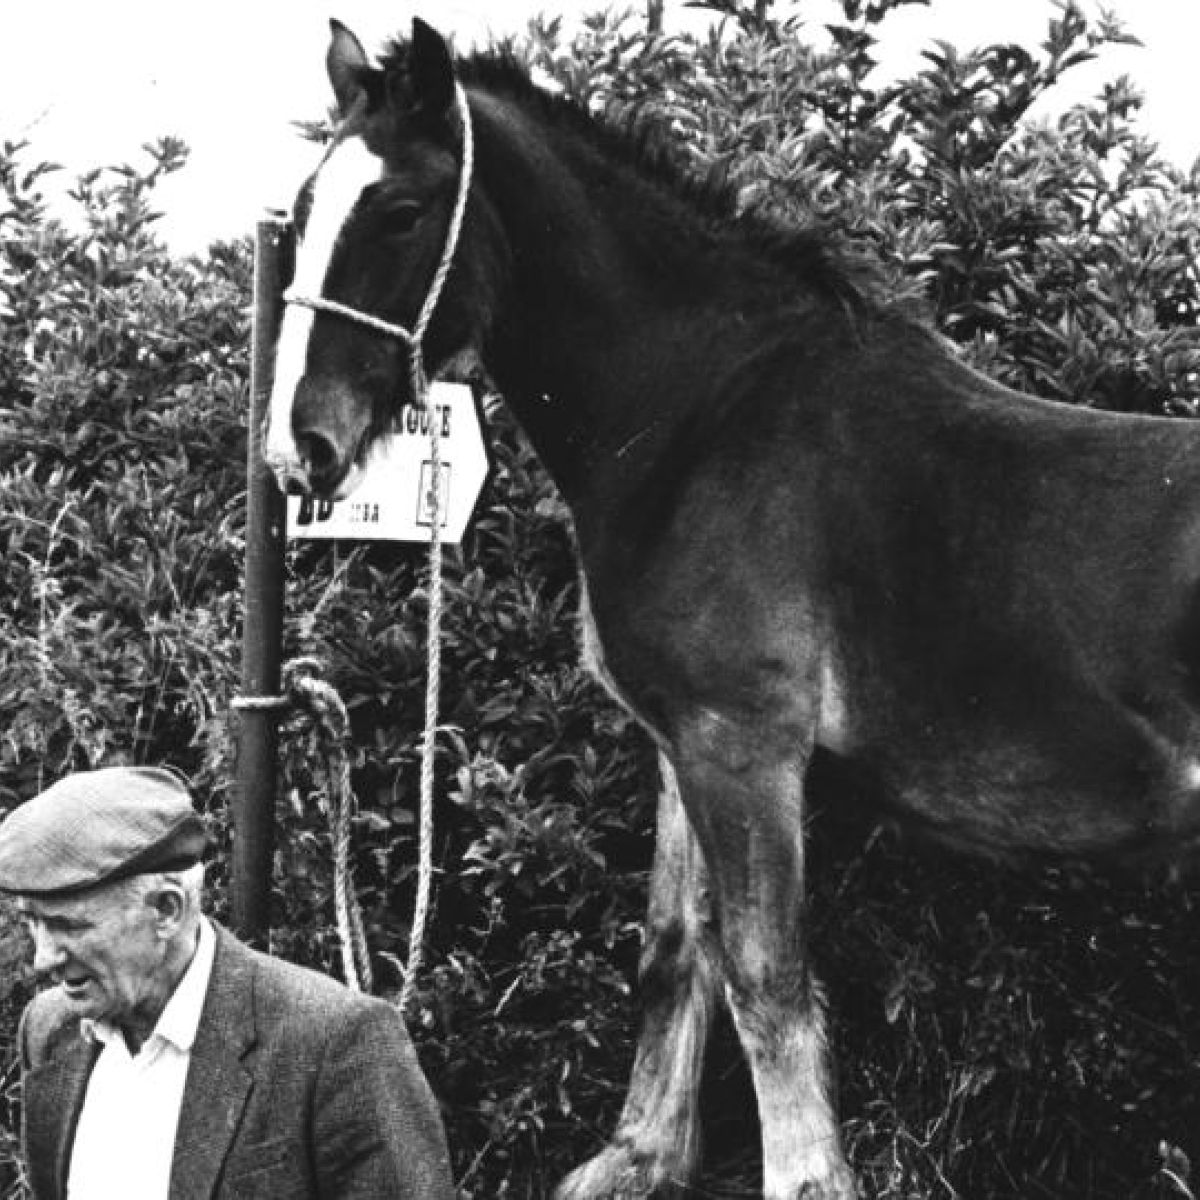 The Times We Lived In: High horses at fair day in Muff